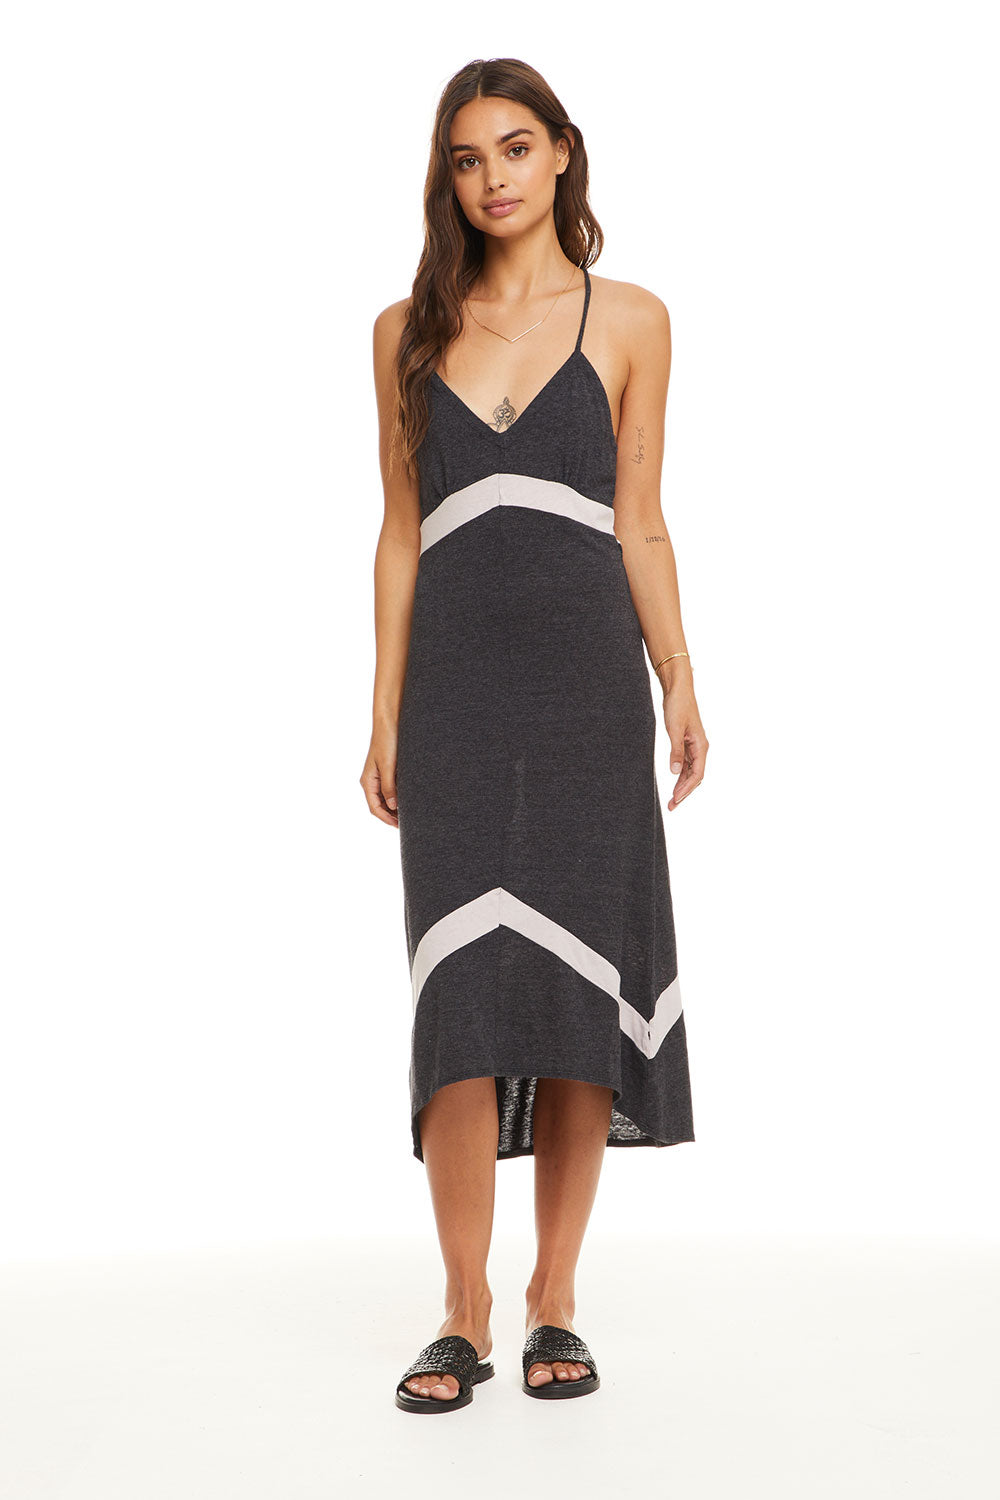 645f228e99 Blocked Jersey Strappy Chevron Insert Midi Dress - chaserbrand.com